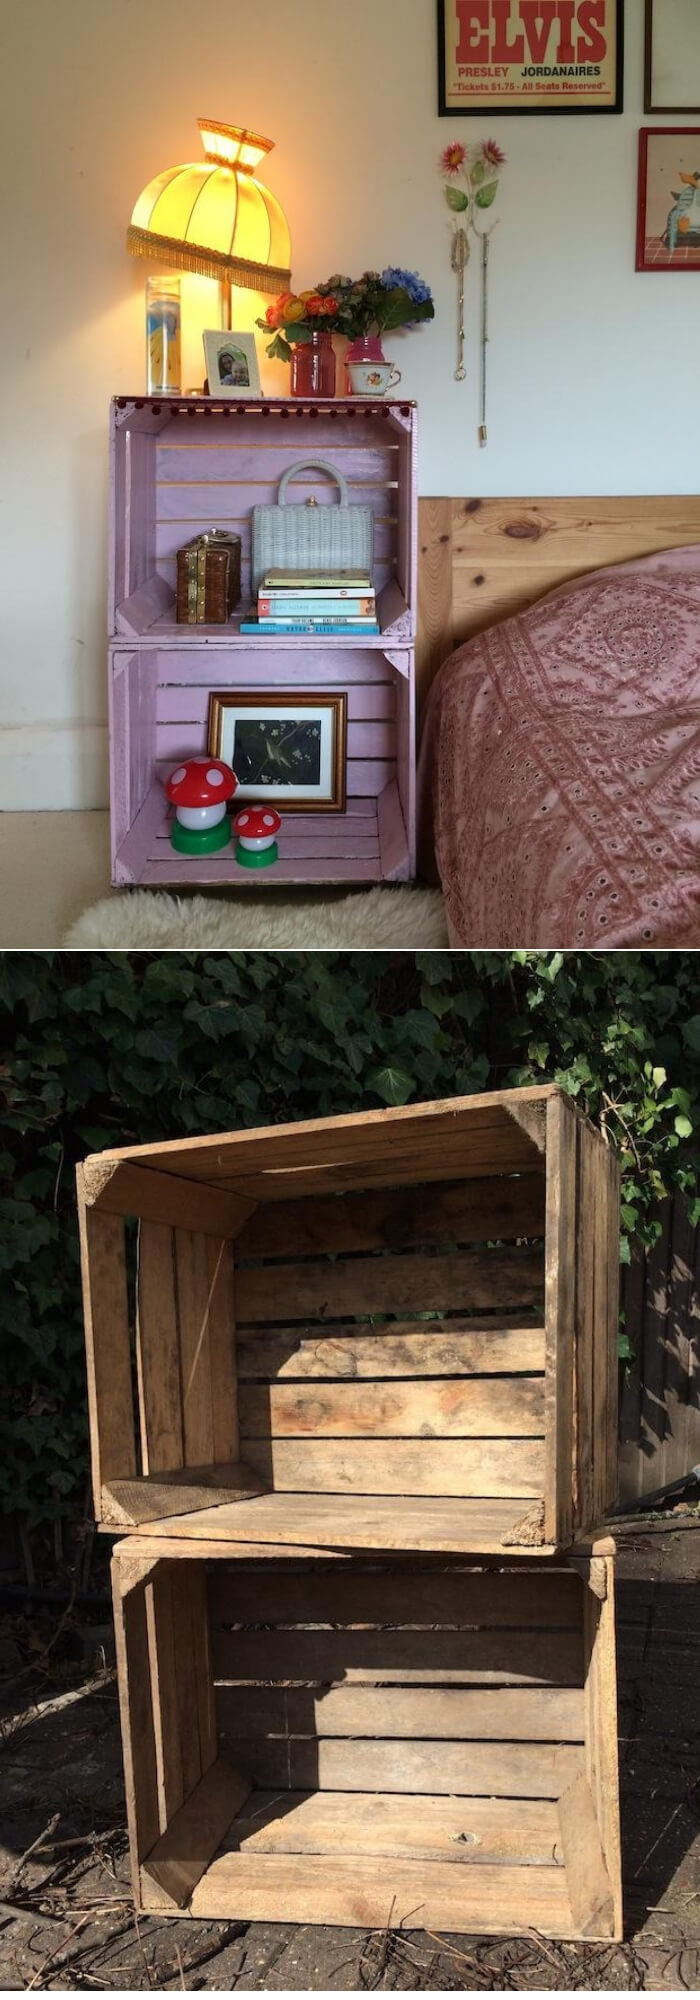 DIY Nightstand | Best DIY Wood Crate Projects & Ideas